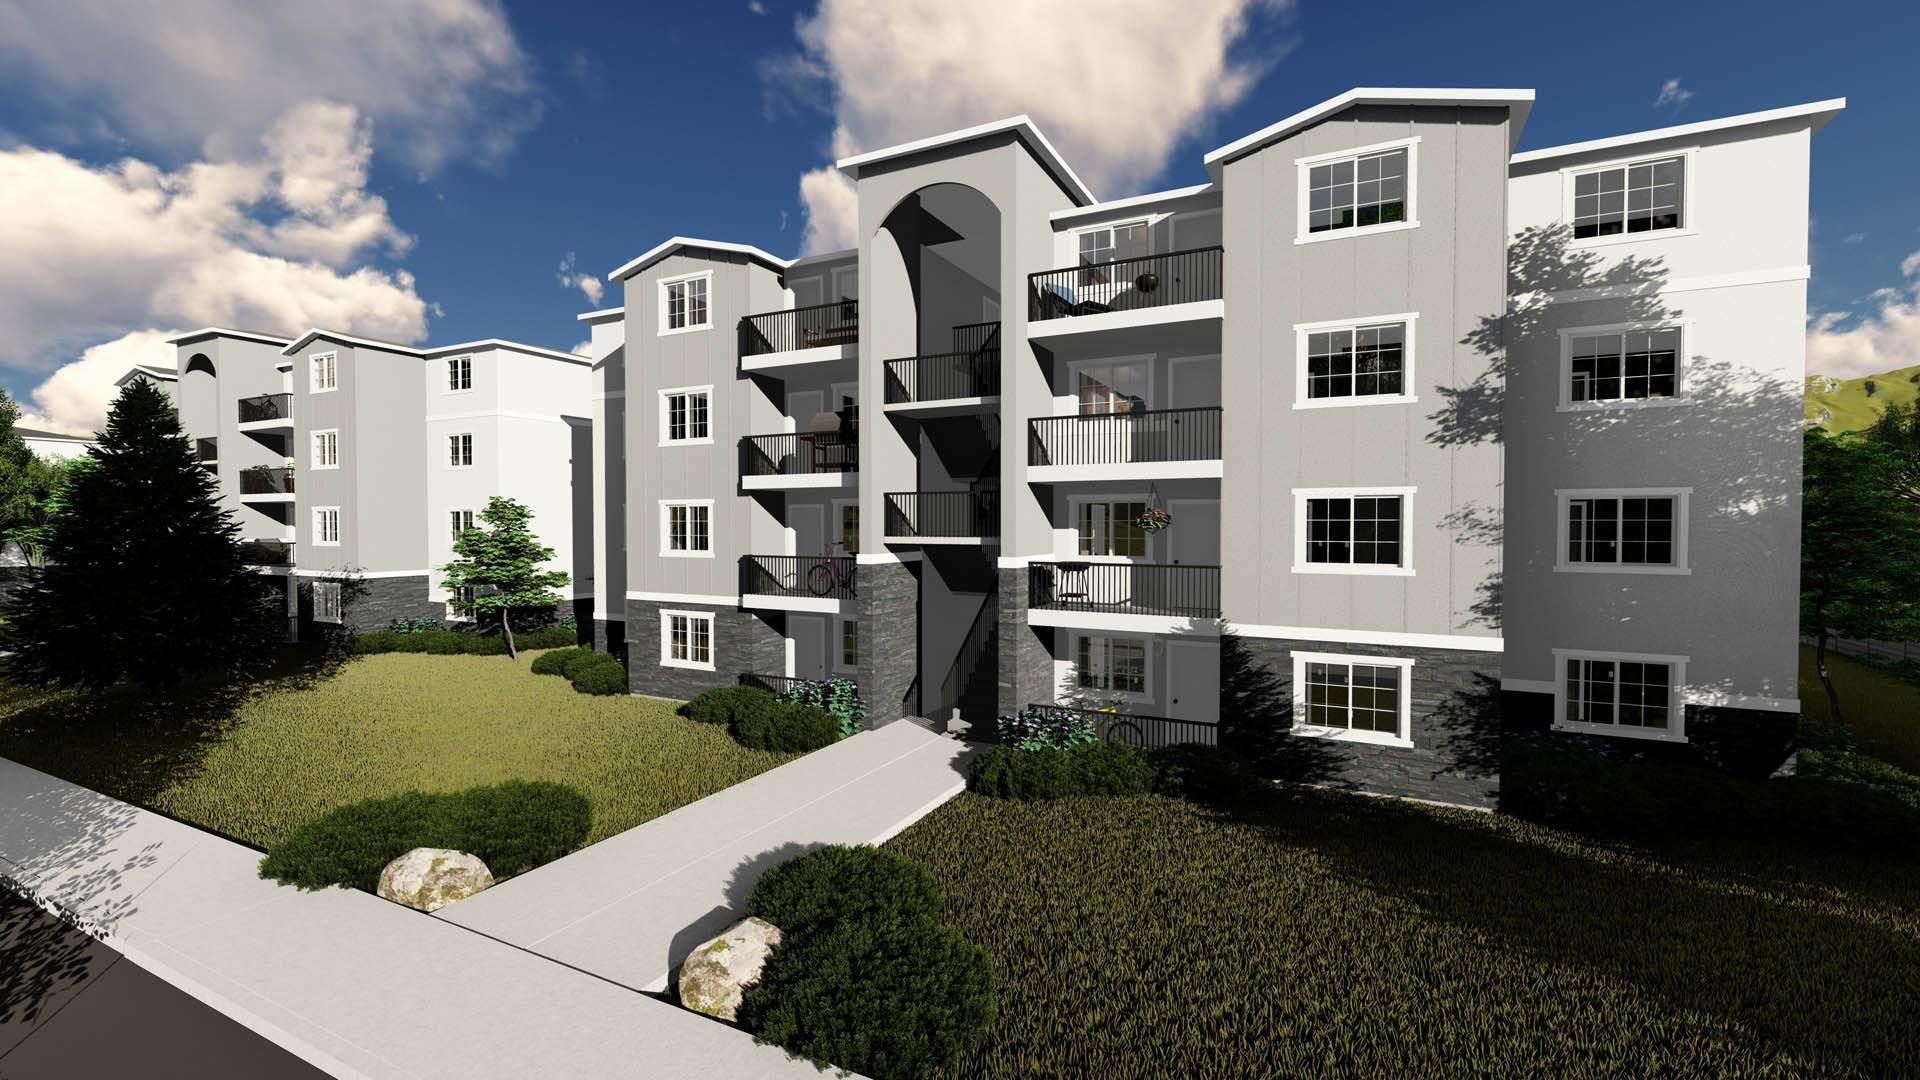 Pineridge Farms is a 2020 multifamily development located in Southern Utah County.